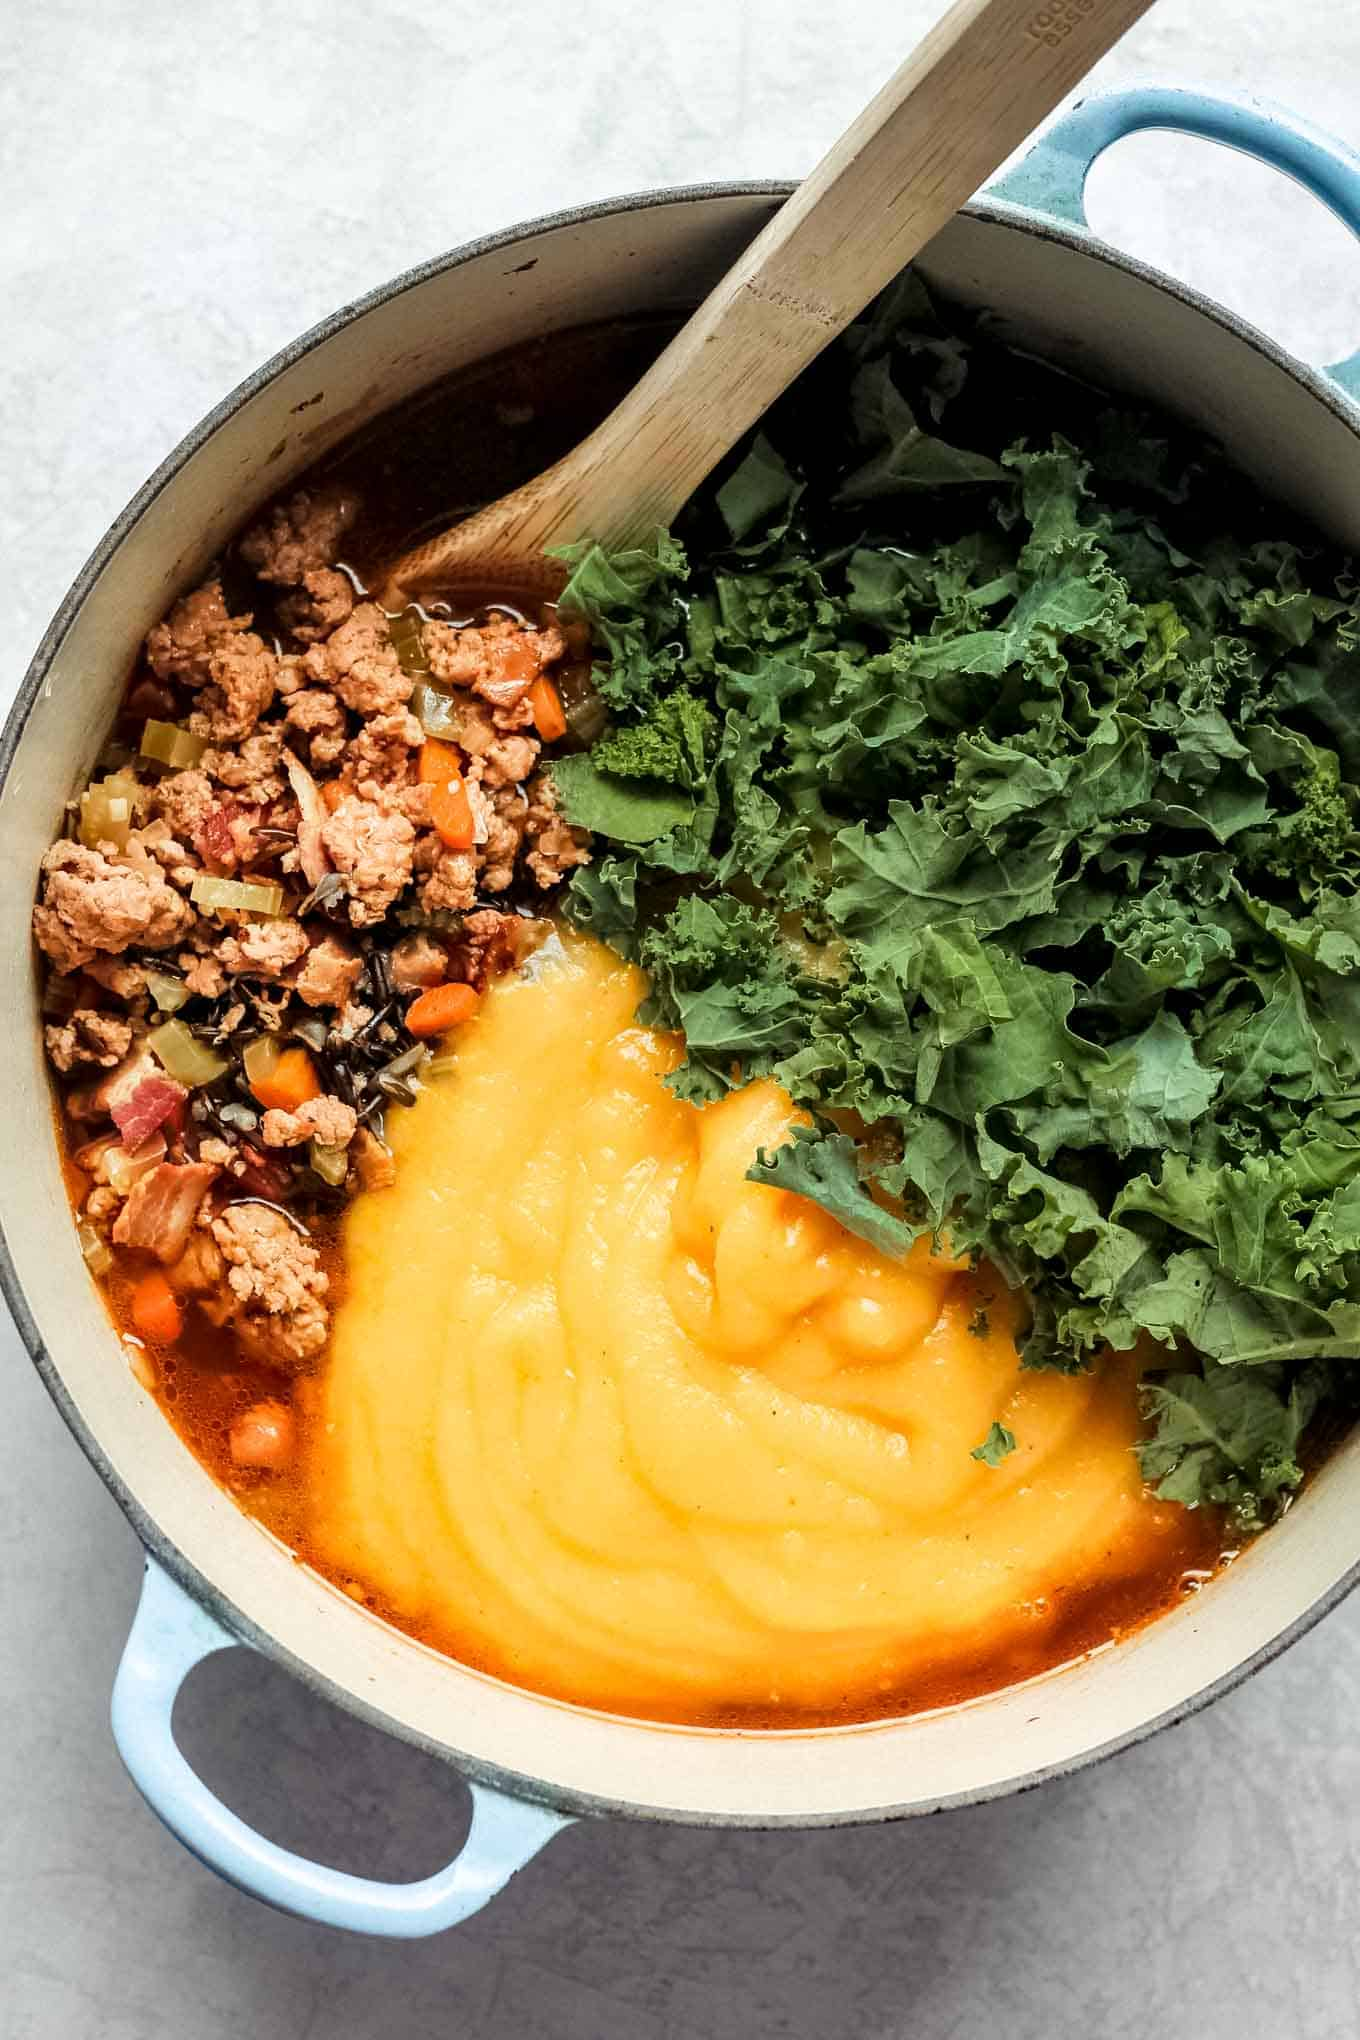 The wild rice and sausage mixture, kale, and pureed butternut squash in the pot prior to mixing together.